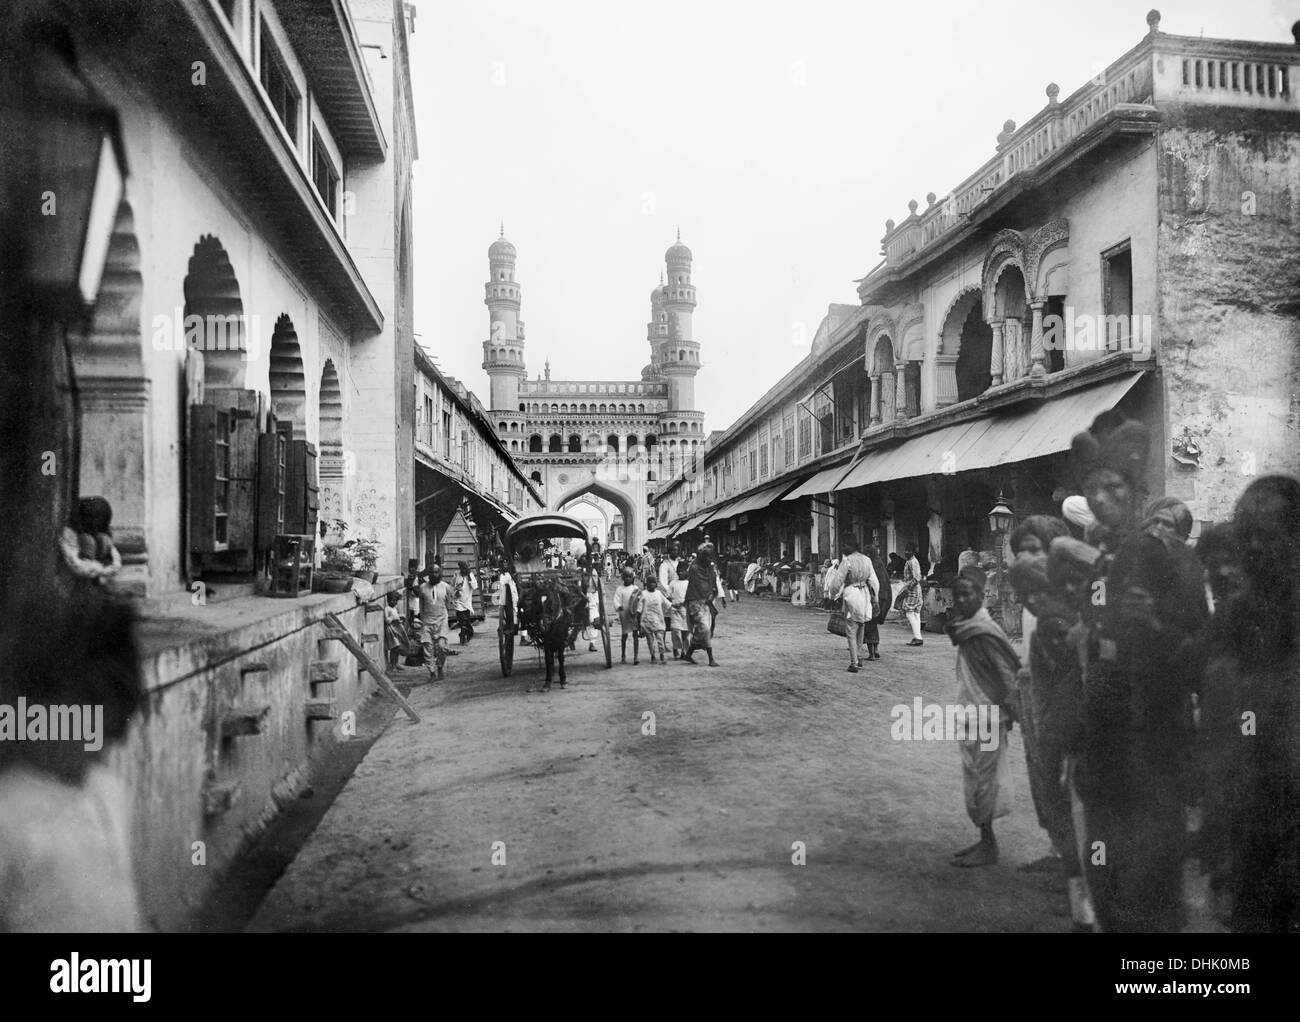 Street scene with view of Charminar in Hyderabad, India, undated photograph (1911/1913). The image was taken by the German photographer Oswald Lübeck, one of the earliest representatives of travel photography and ship photography aboard passenger ships. Photo: Deutsche Fotothek/Oswald Lübeck - Stock Image